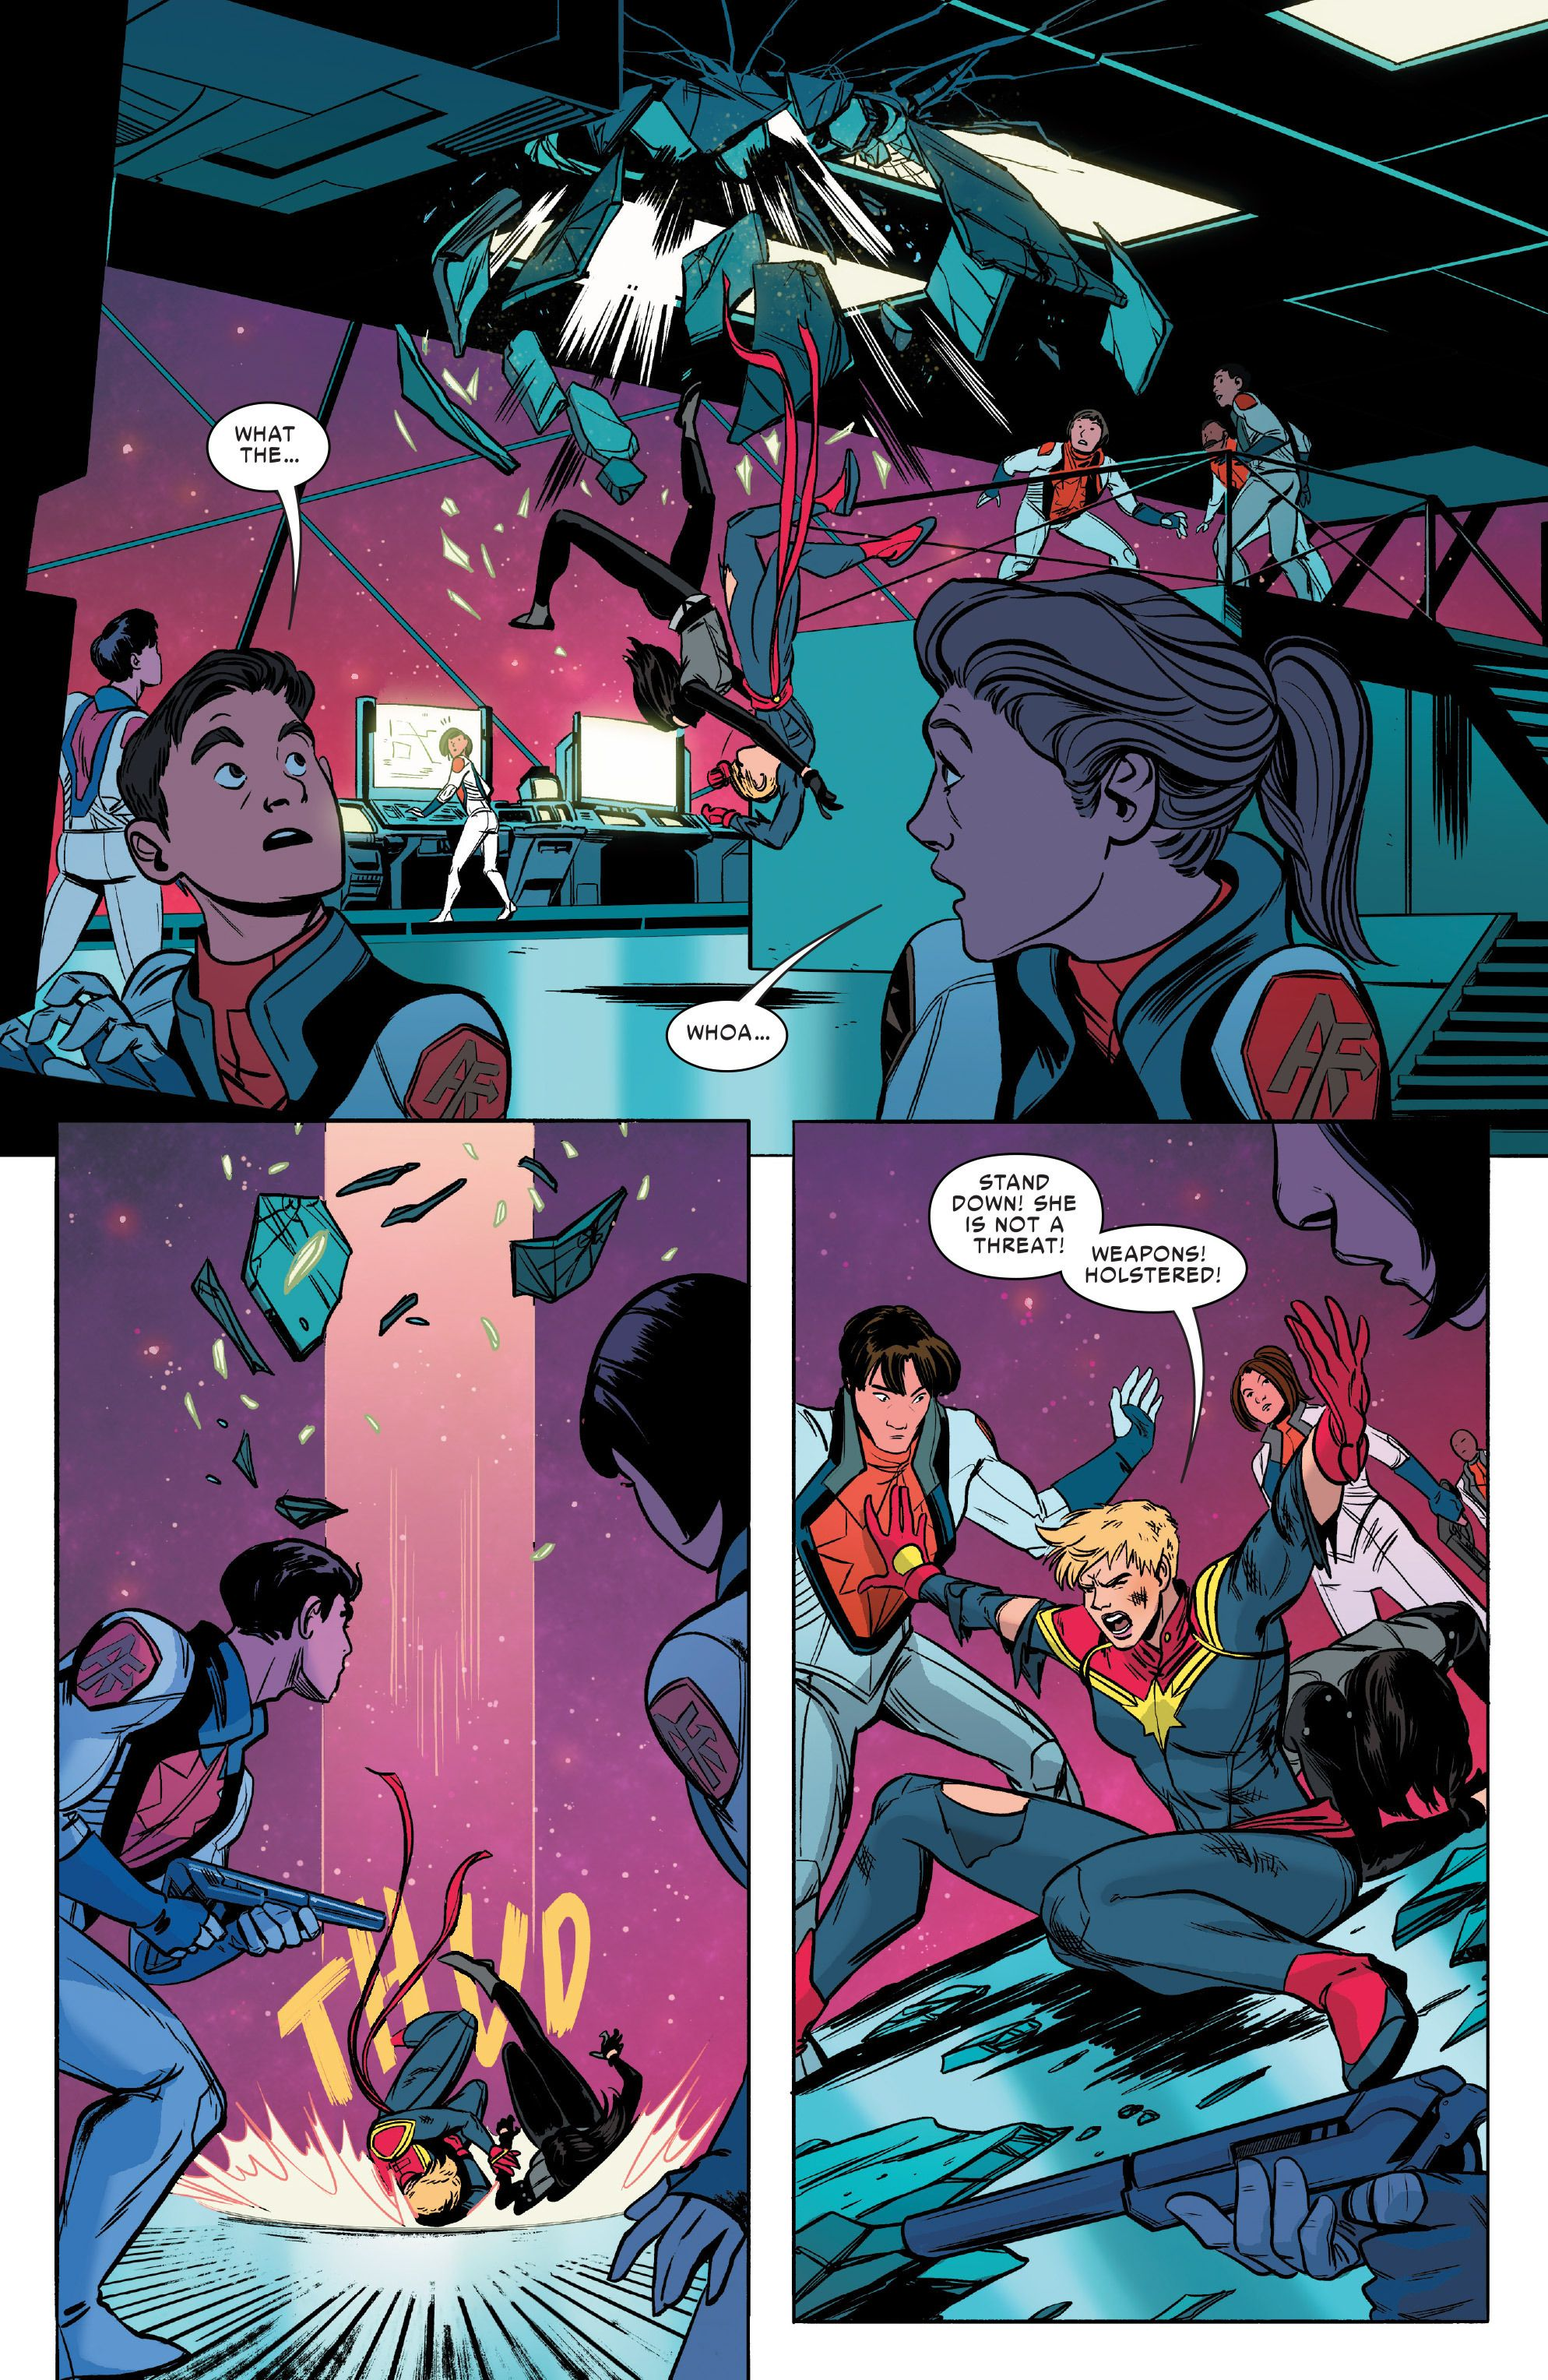 Spider-Woman (2016) Issue #11 - Read Spider-Woman (2016) Issue #11 comic online in high quality